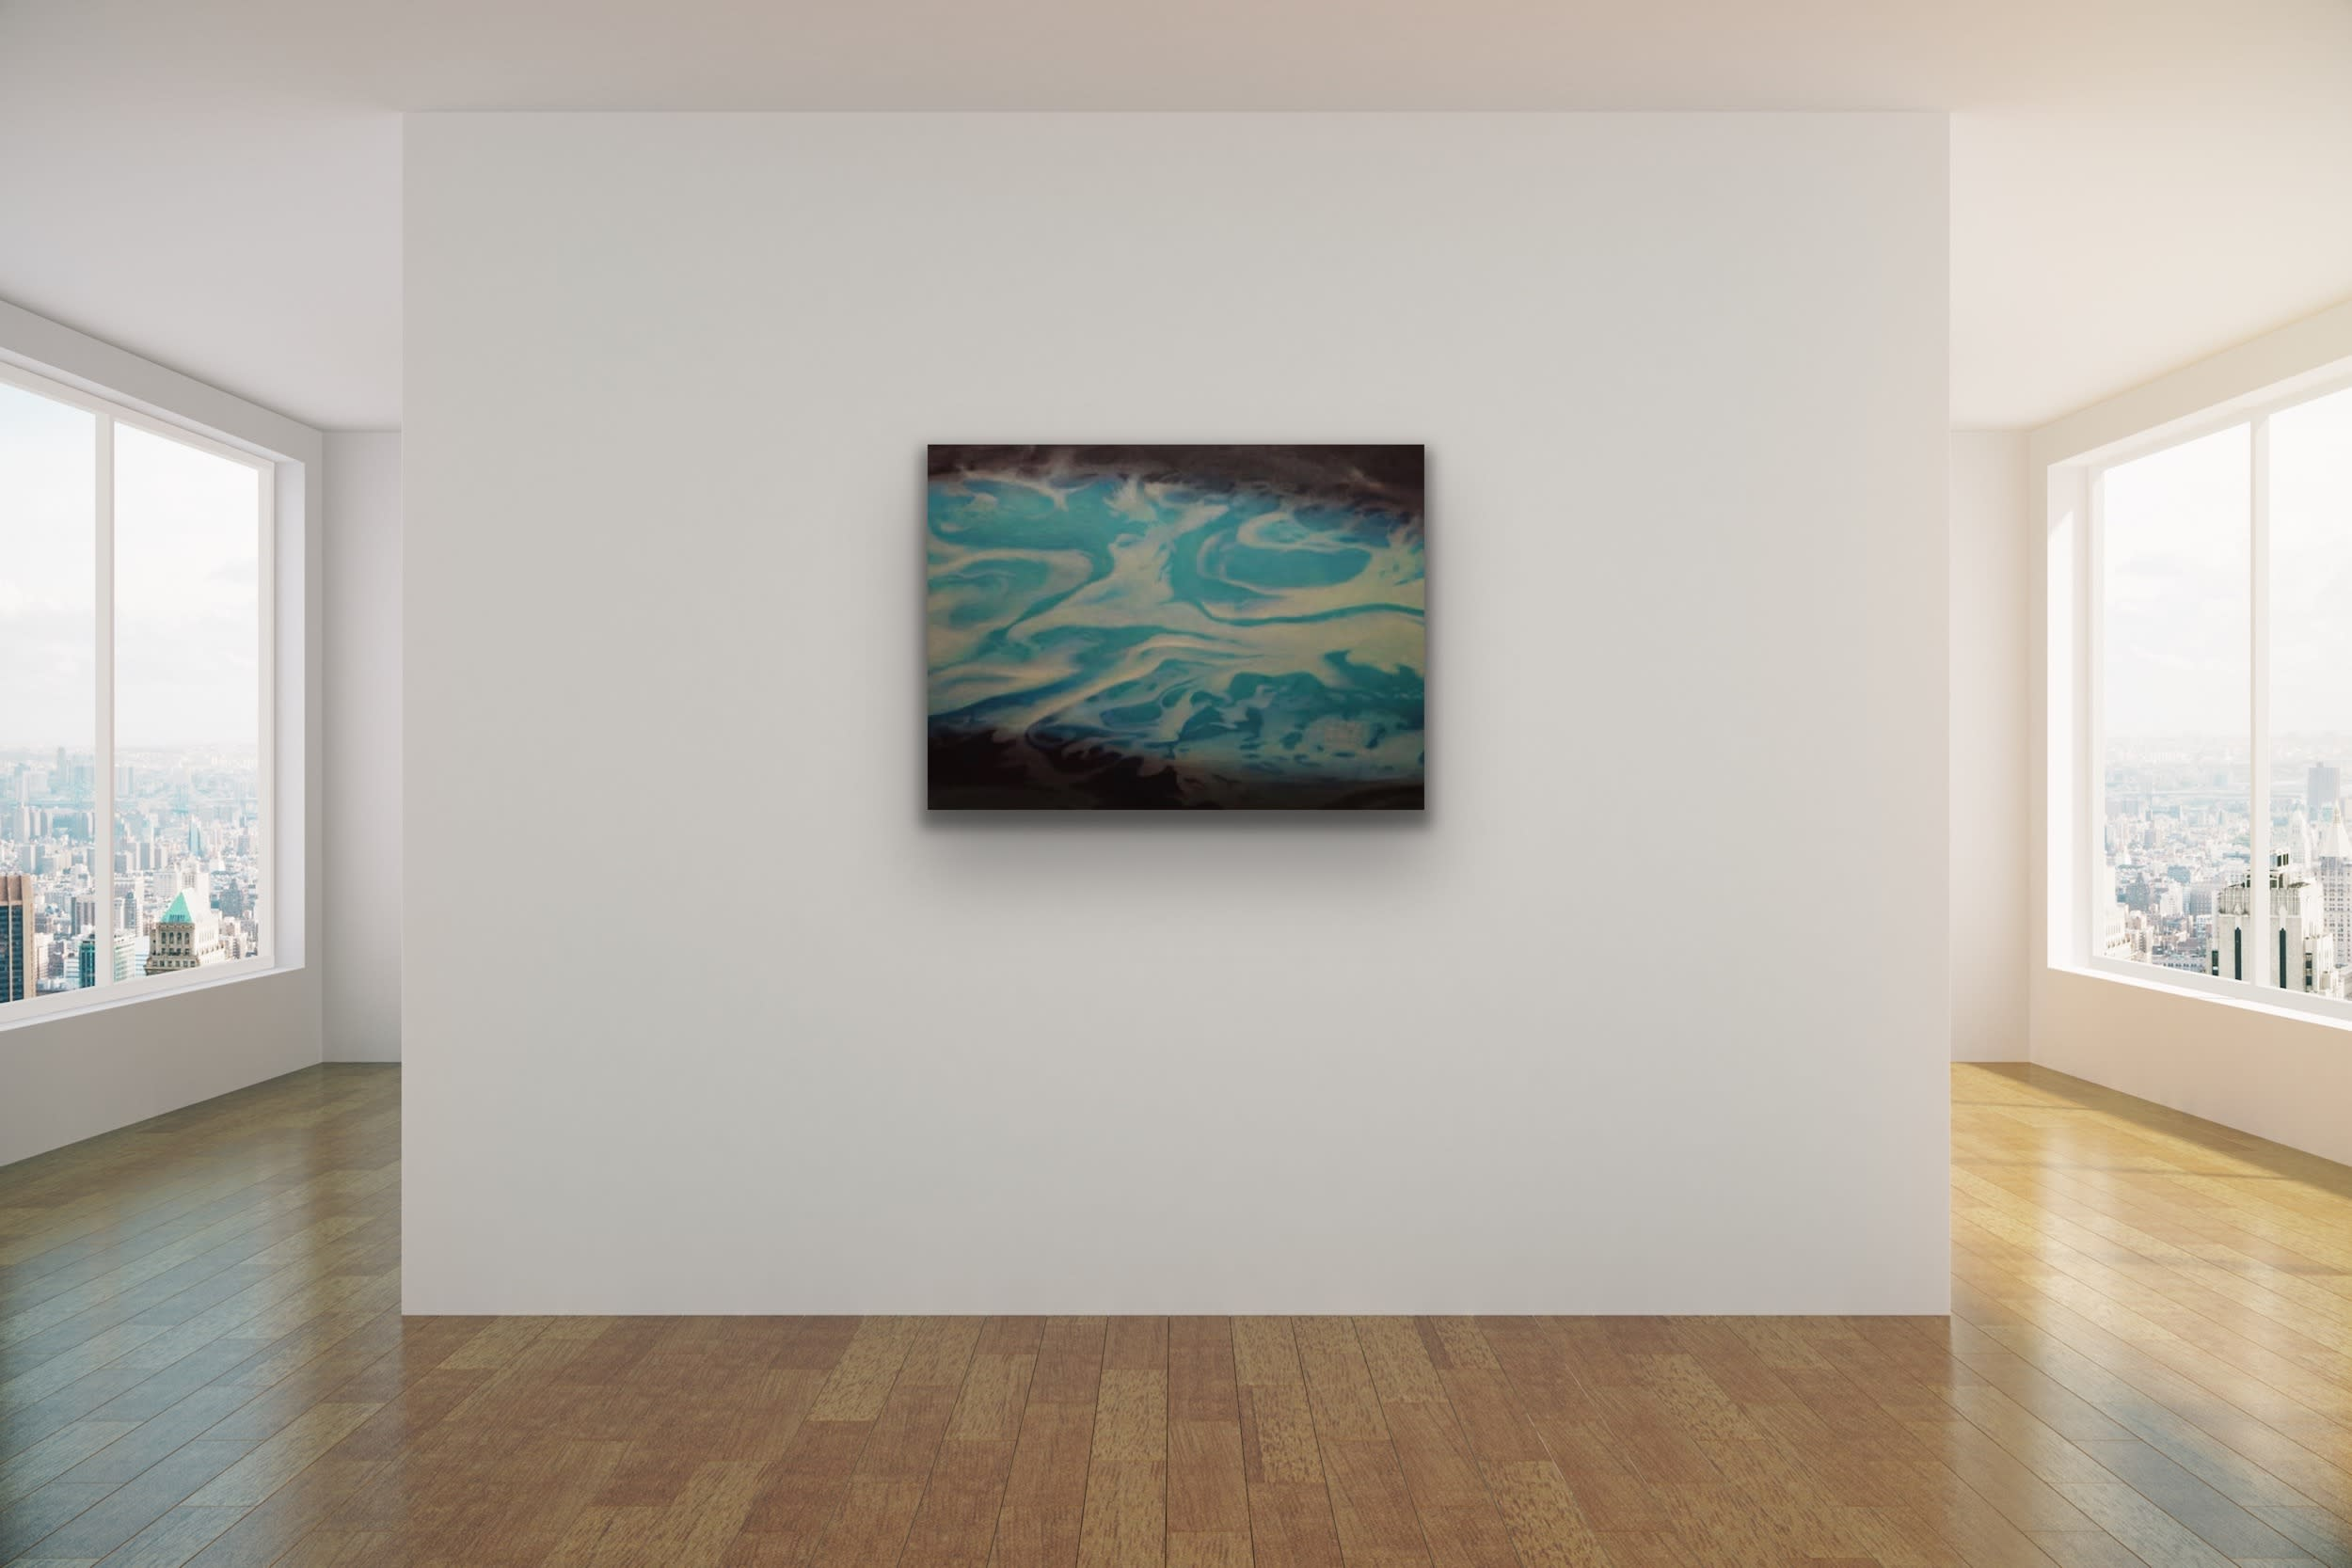 <div class='title'>           Diana Lehr   Landscape Abstract Painting Art Gallery Evo Art Maui Lahaina Kammy Hodges Robbie Ripper Burrer Consultant Collect FIne Luxury 5         </div>